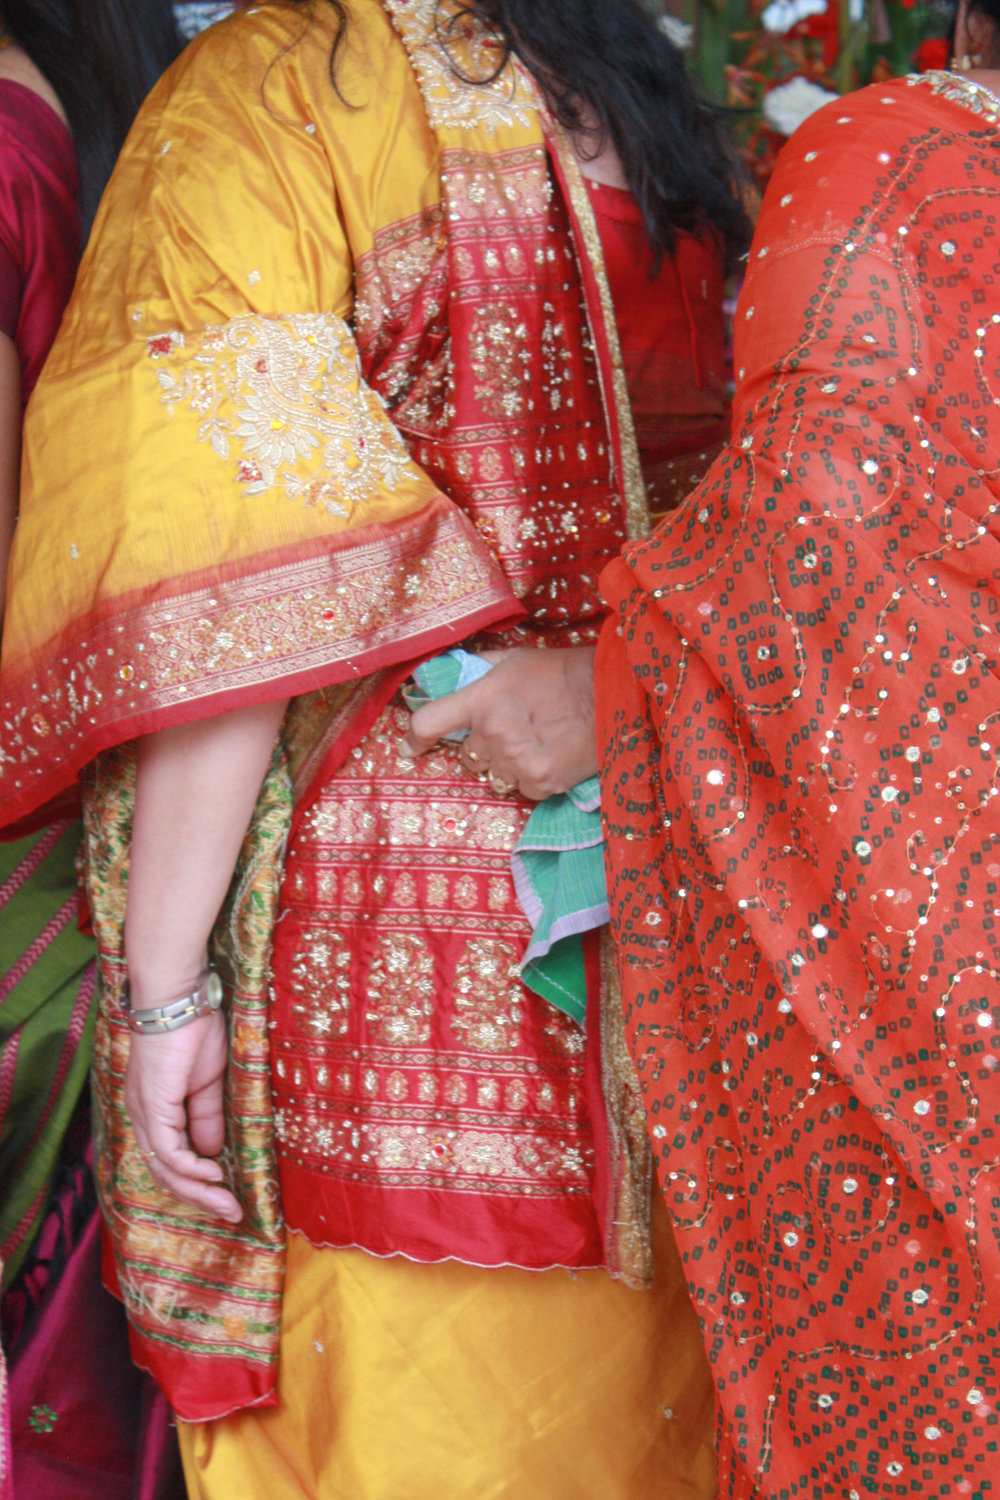 Destination-Wedding-India-Marshall-Arts-Photography-Stacie-Marshall--3.jpg